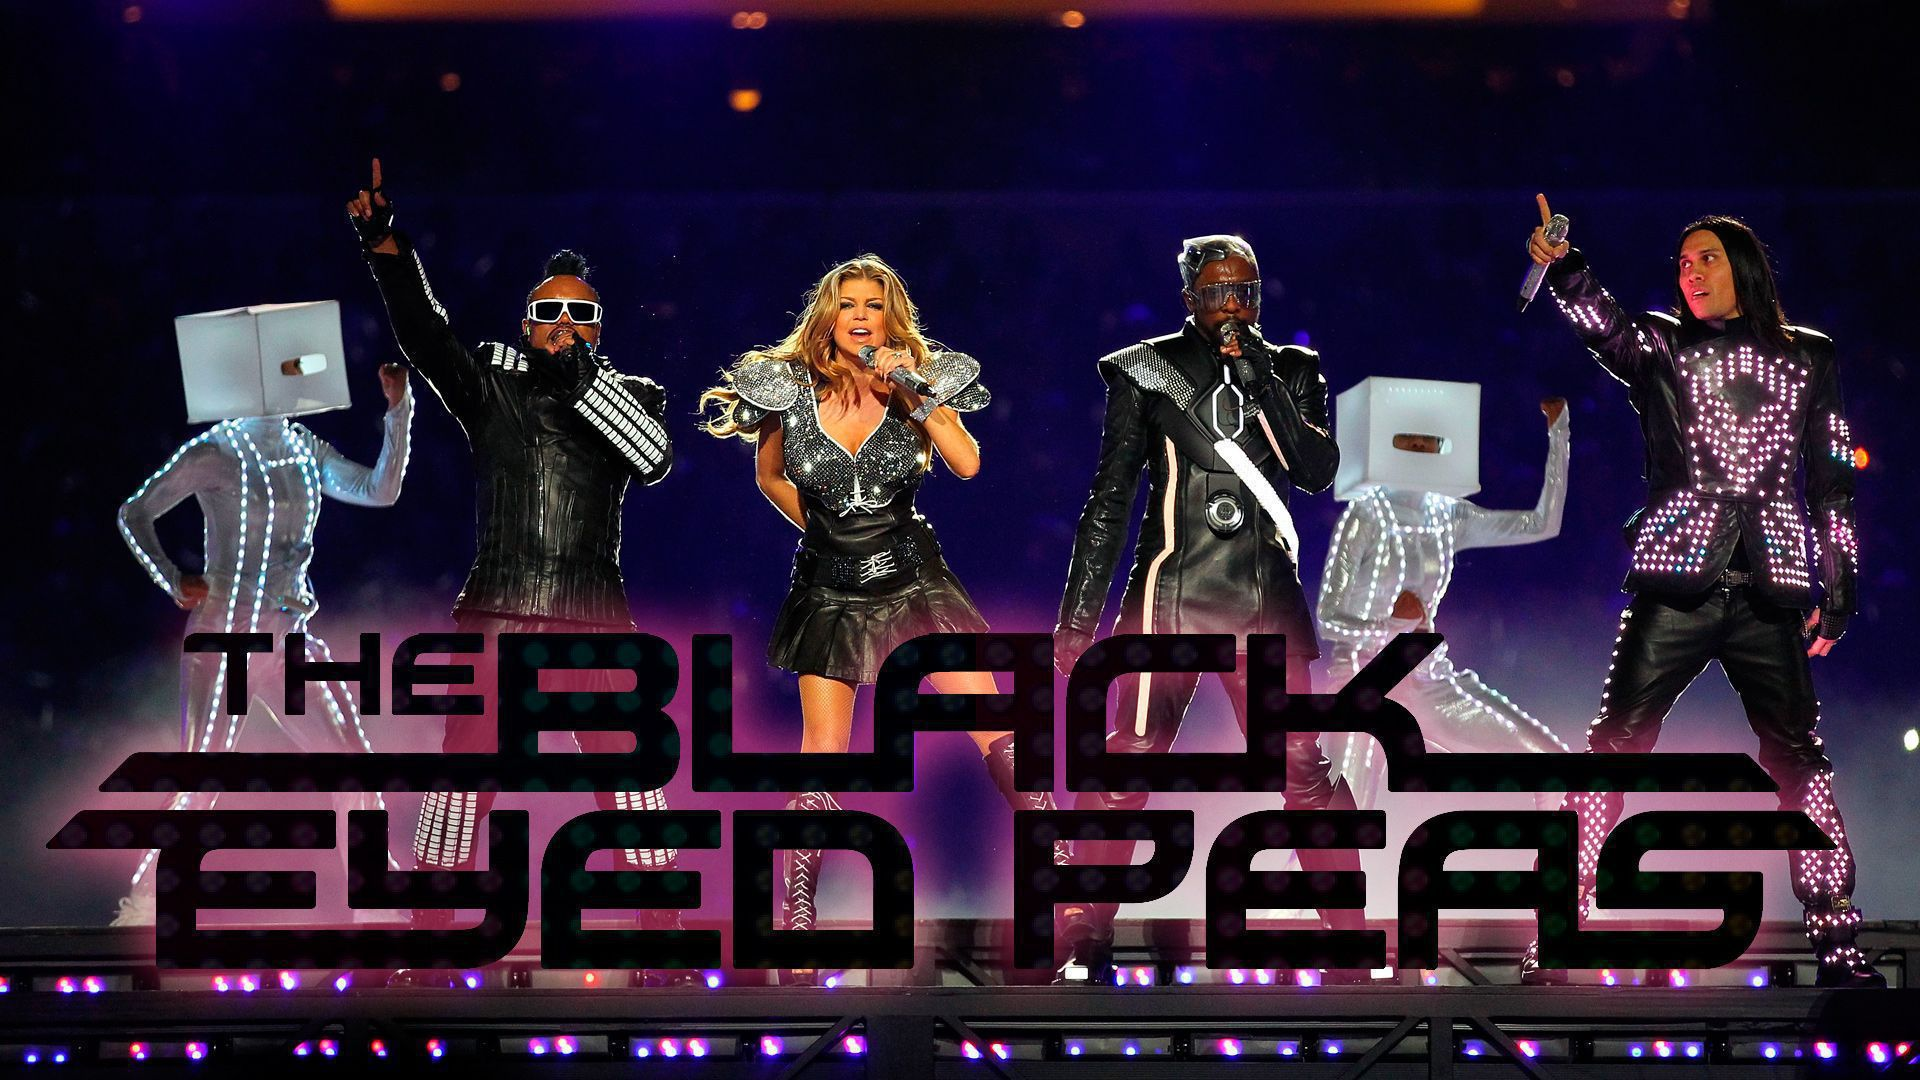 Black Eyed Peas HD Desktop